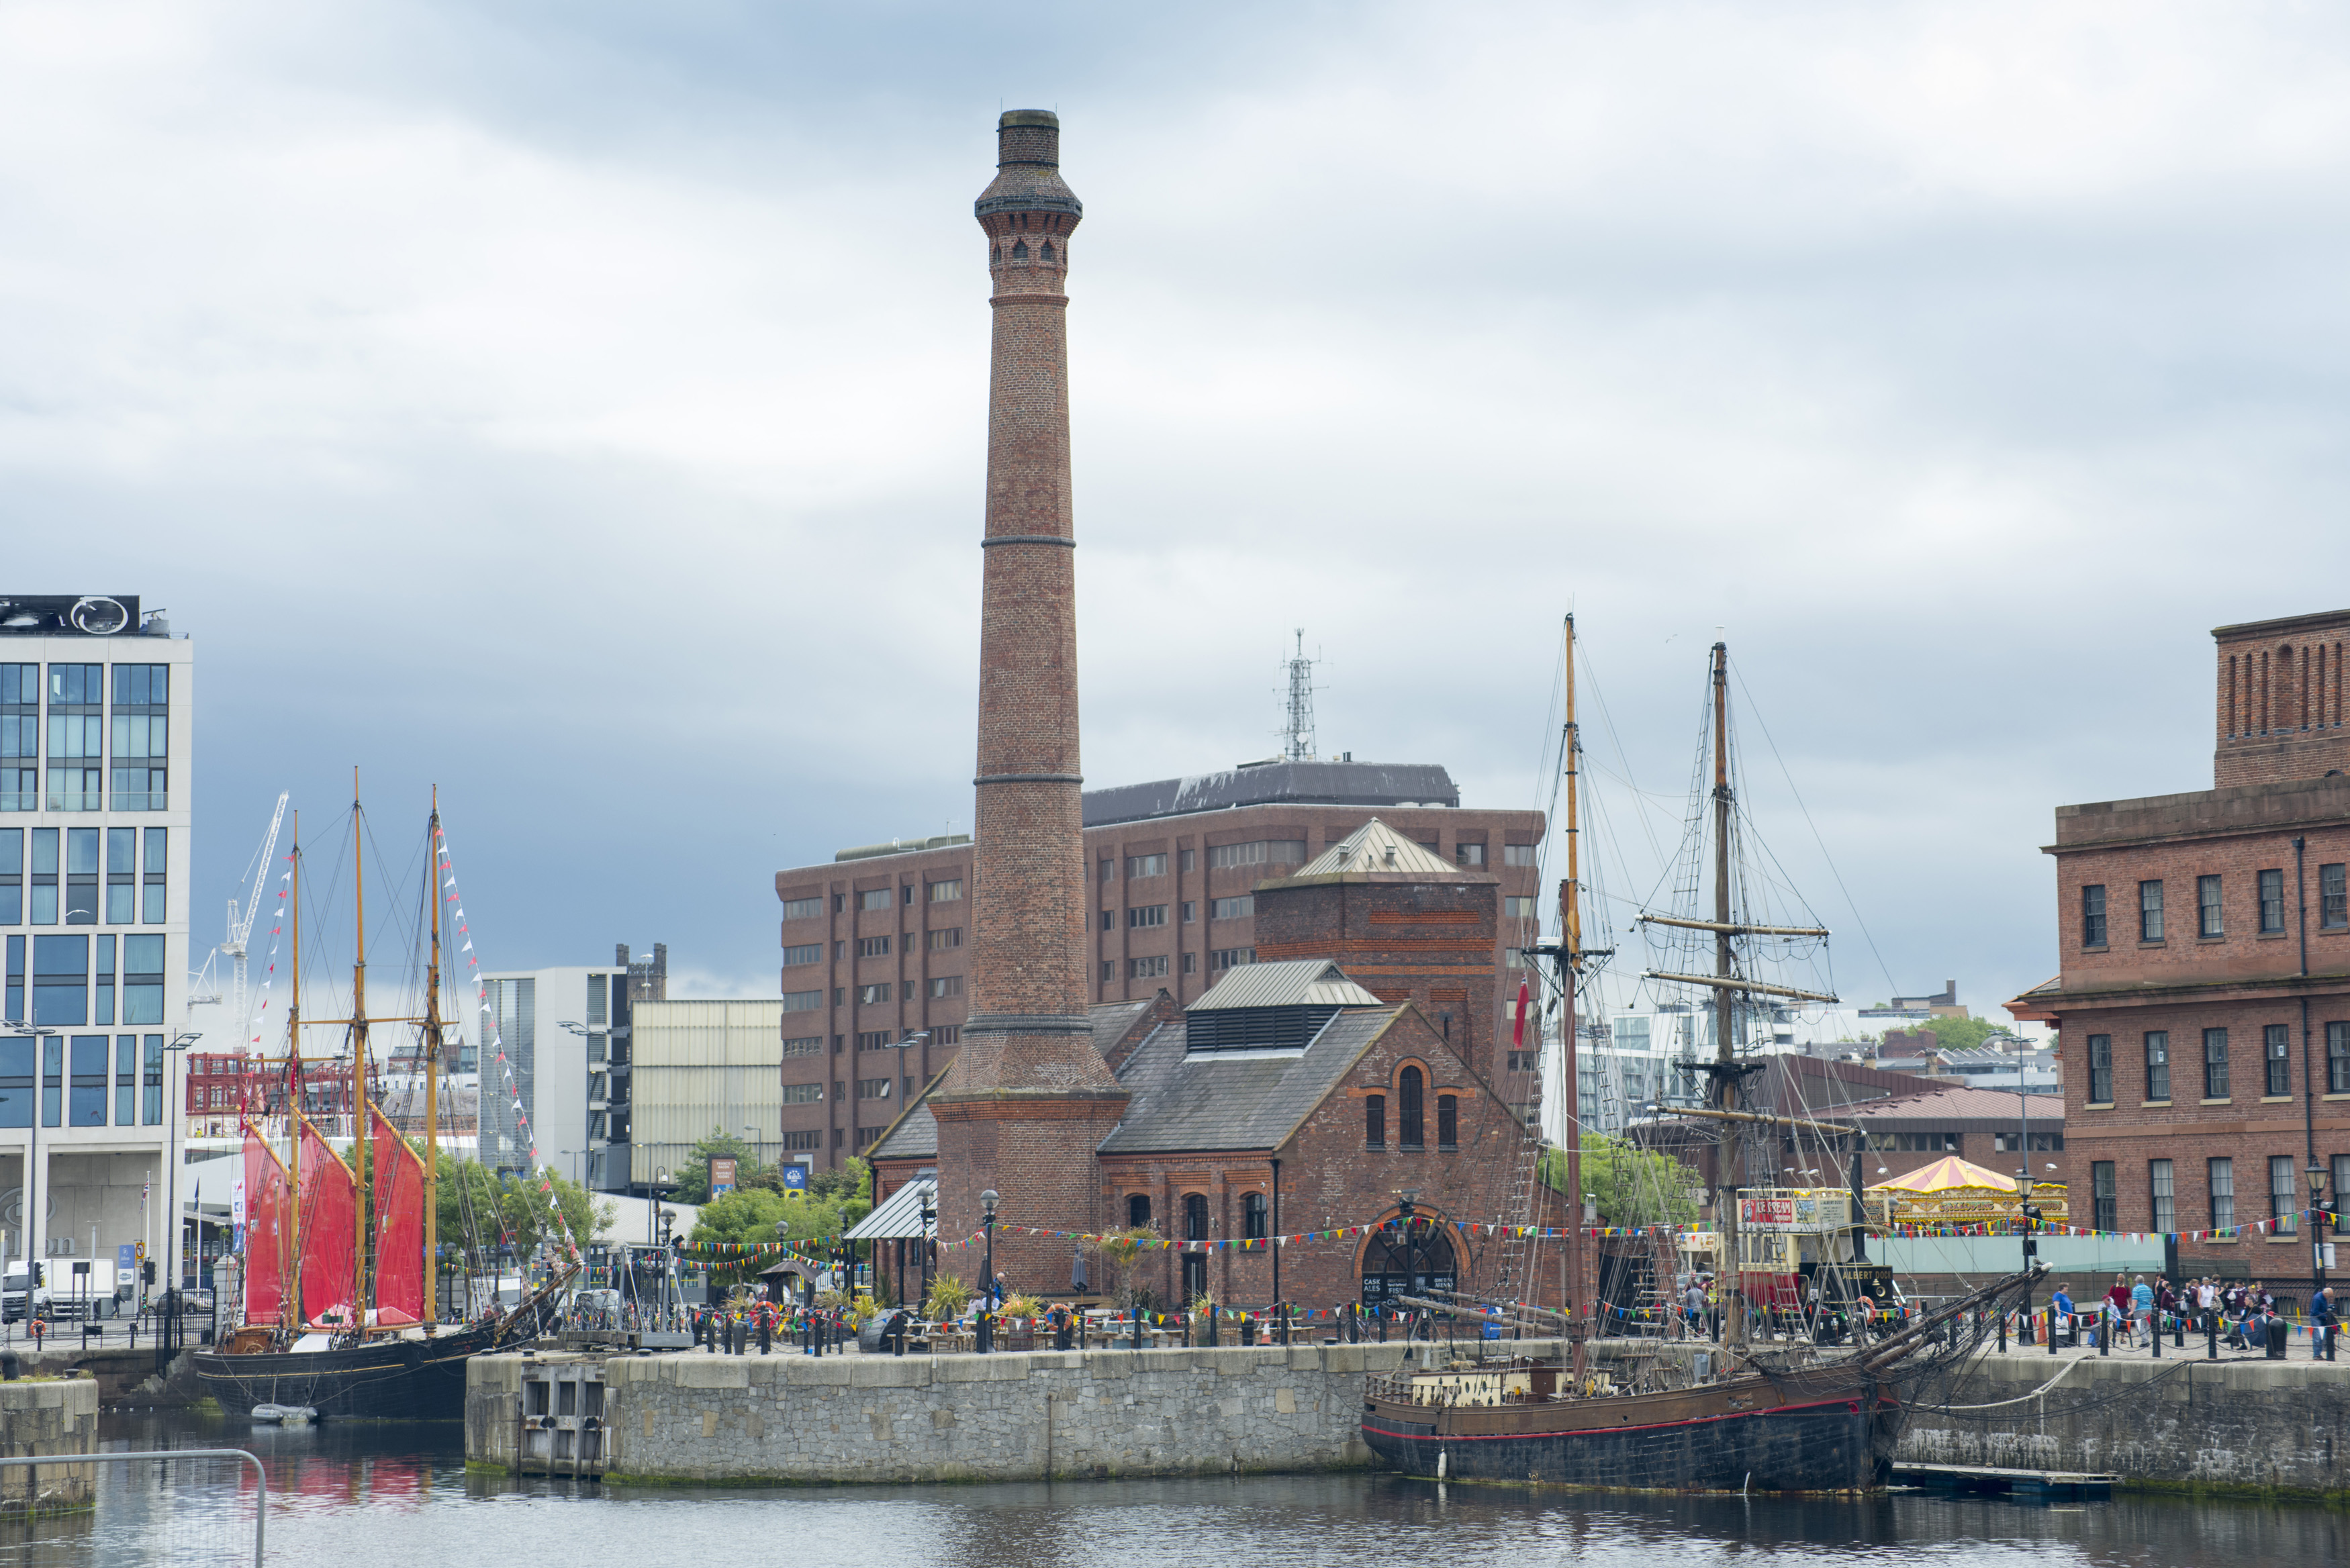 Old power plant with ship at Liverpool Waterfront under overcast sky in the United Kingdom